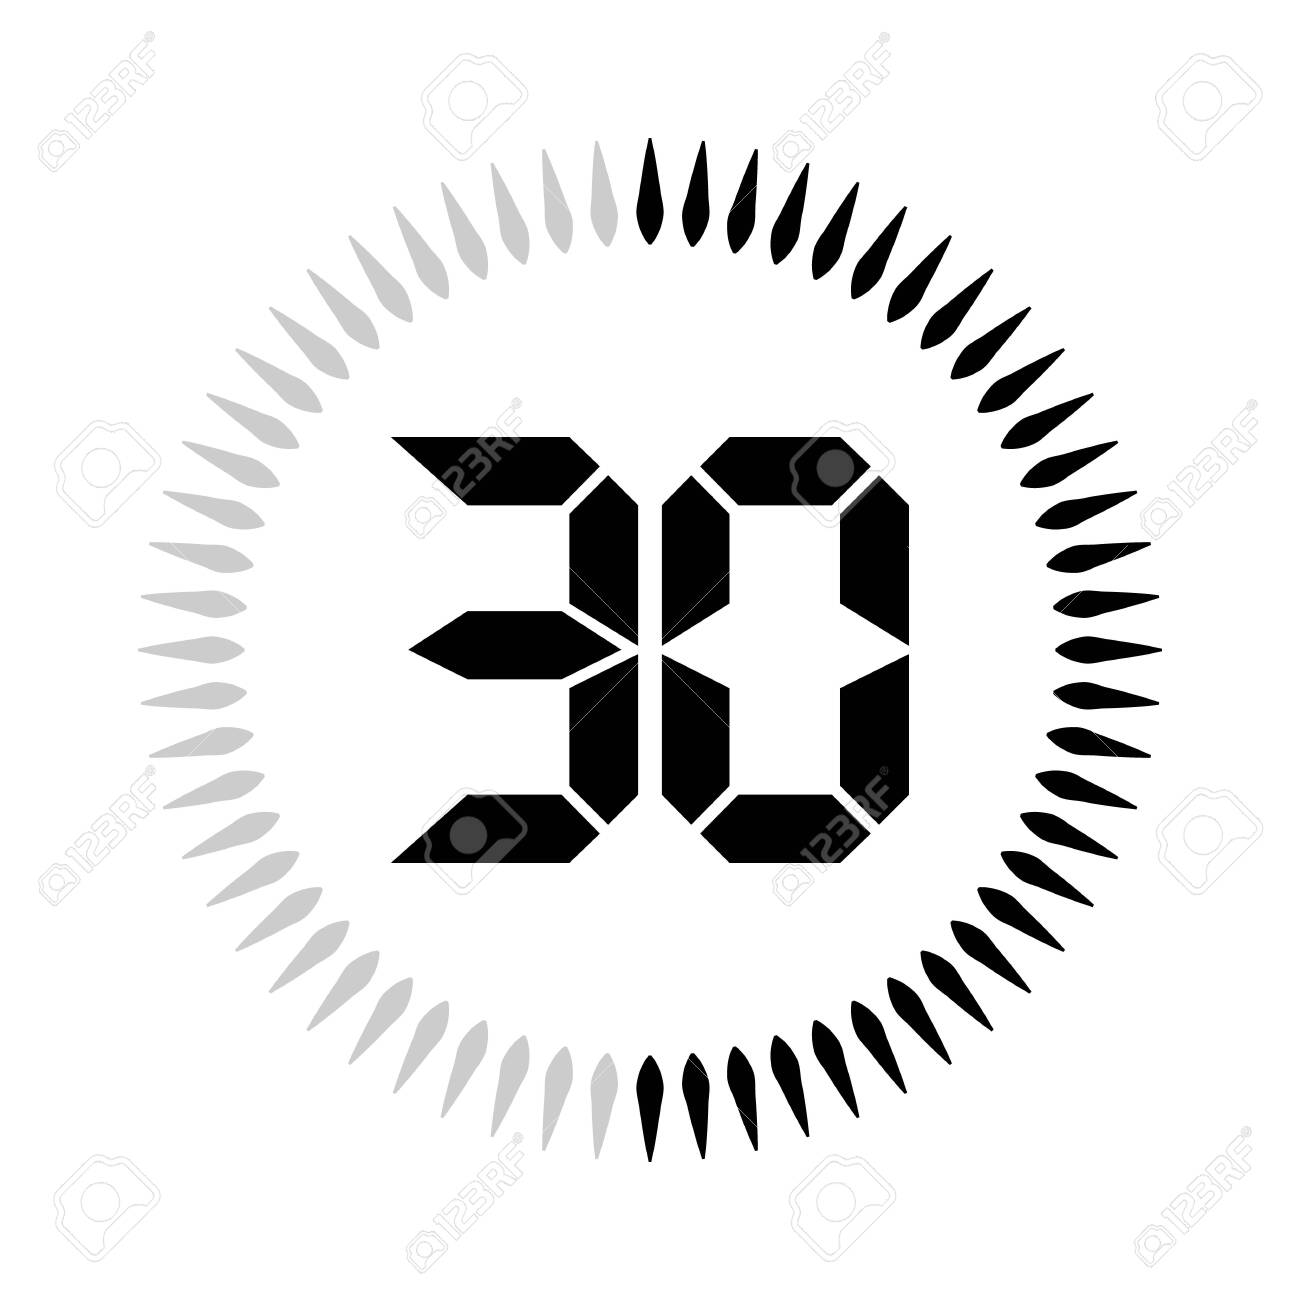 The 30 minutes or seconds, stopwatch vector icon, digital timer. clock and watch, timer. - 127834602